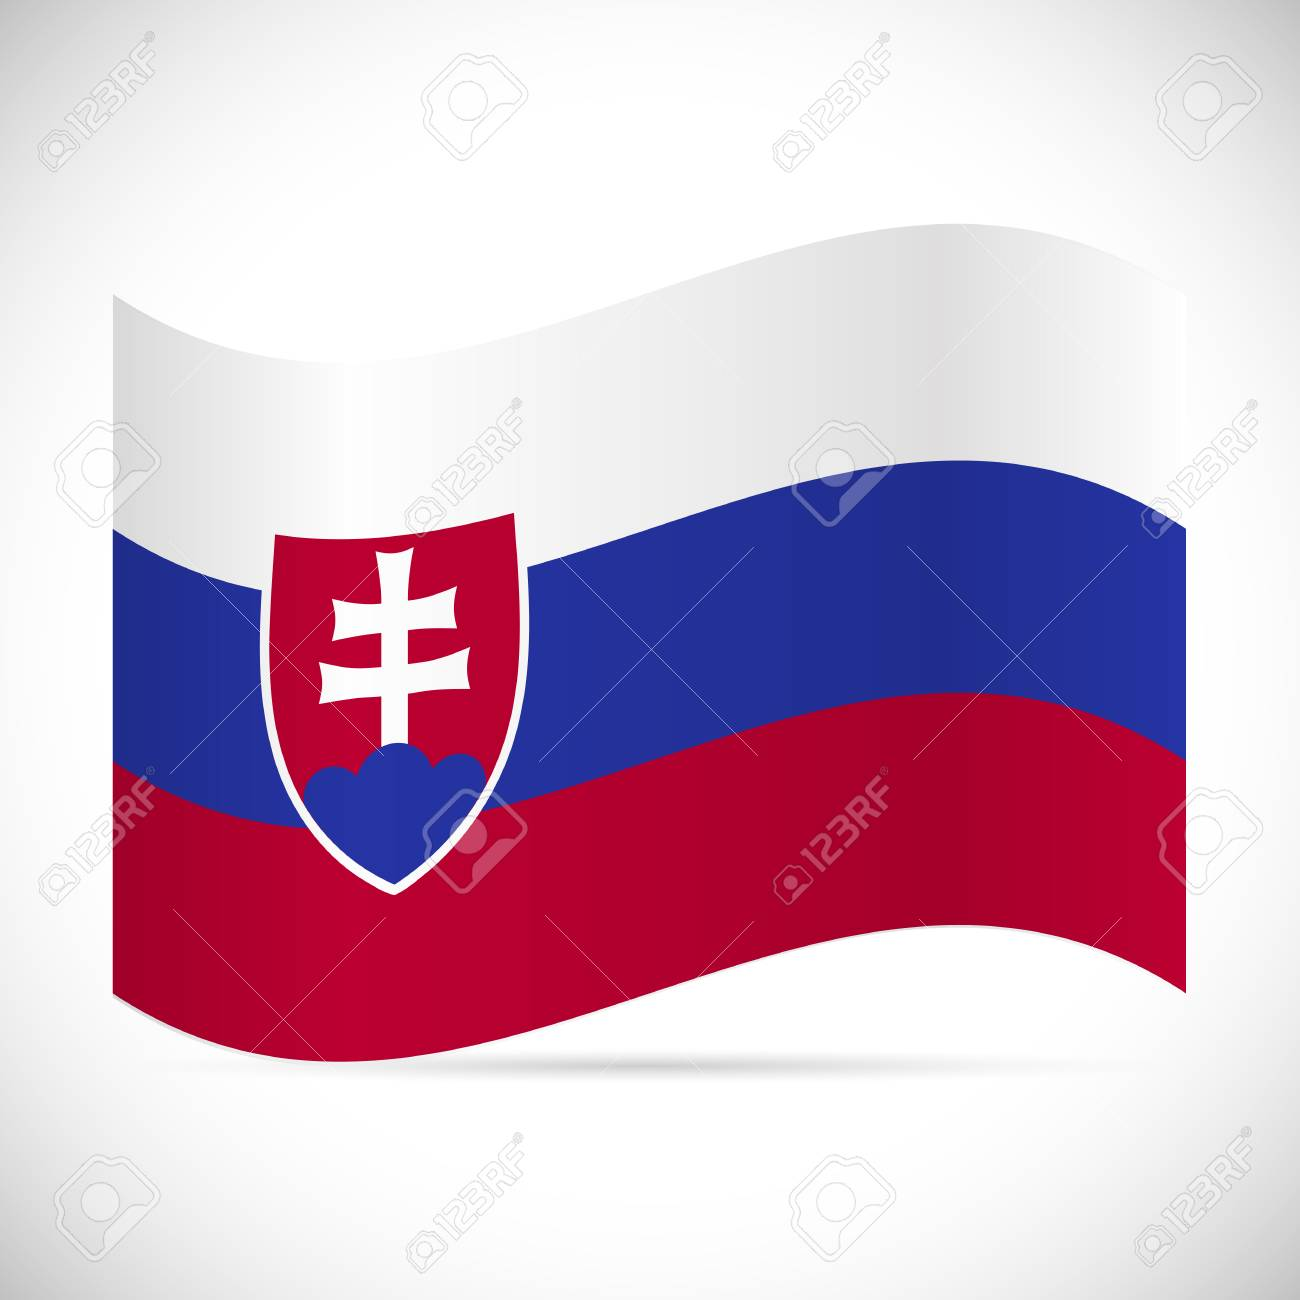 Illustration of the flag of Slovakia isolated on a white background. - 97101988